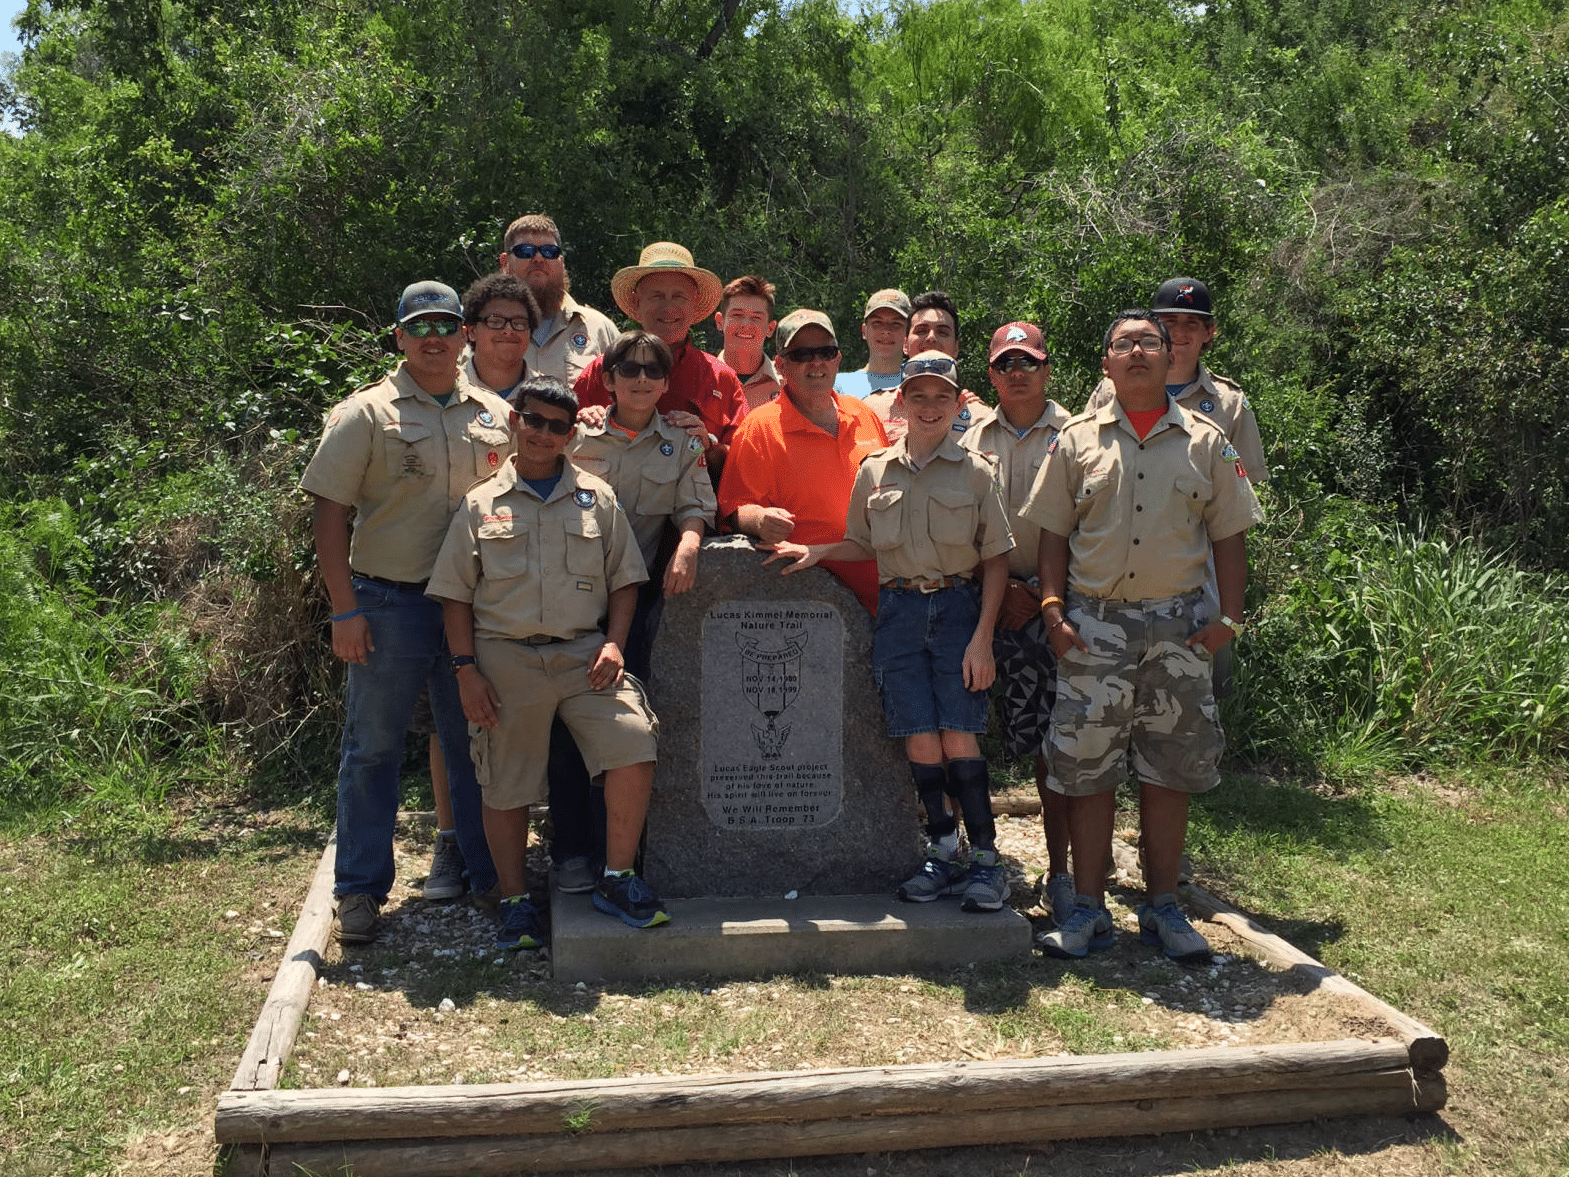 Mike Pusley with Boy Scouts